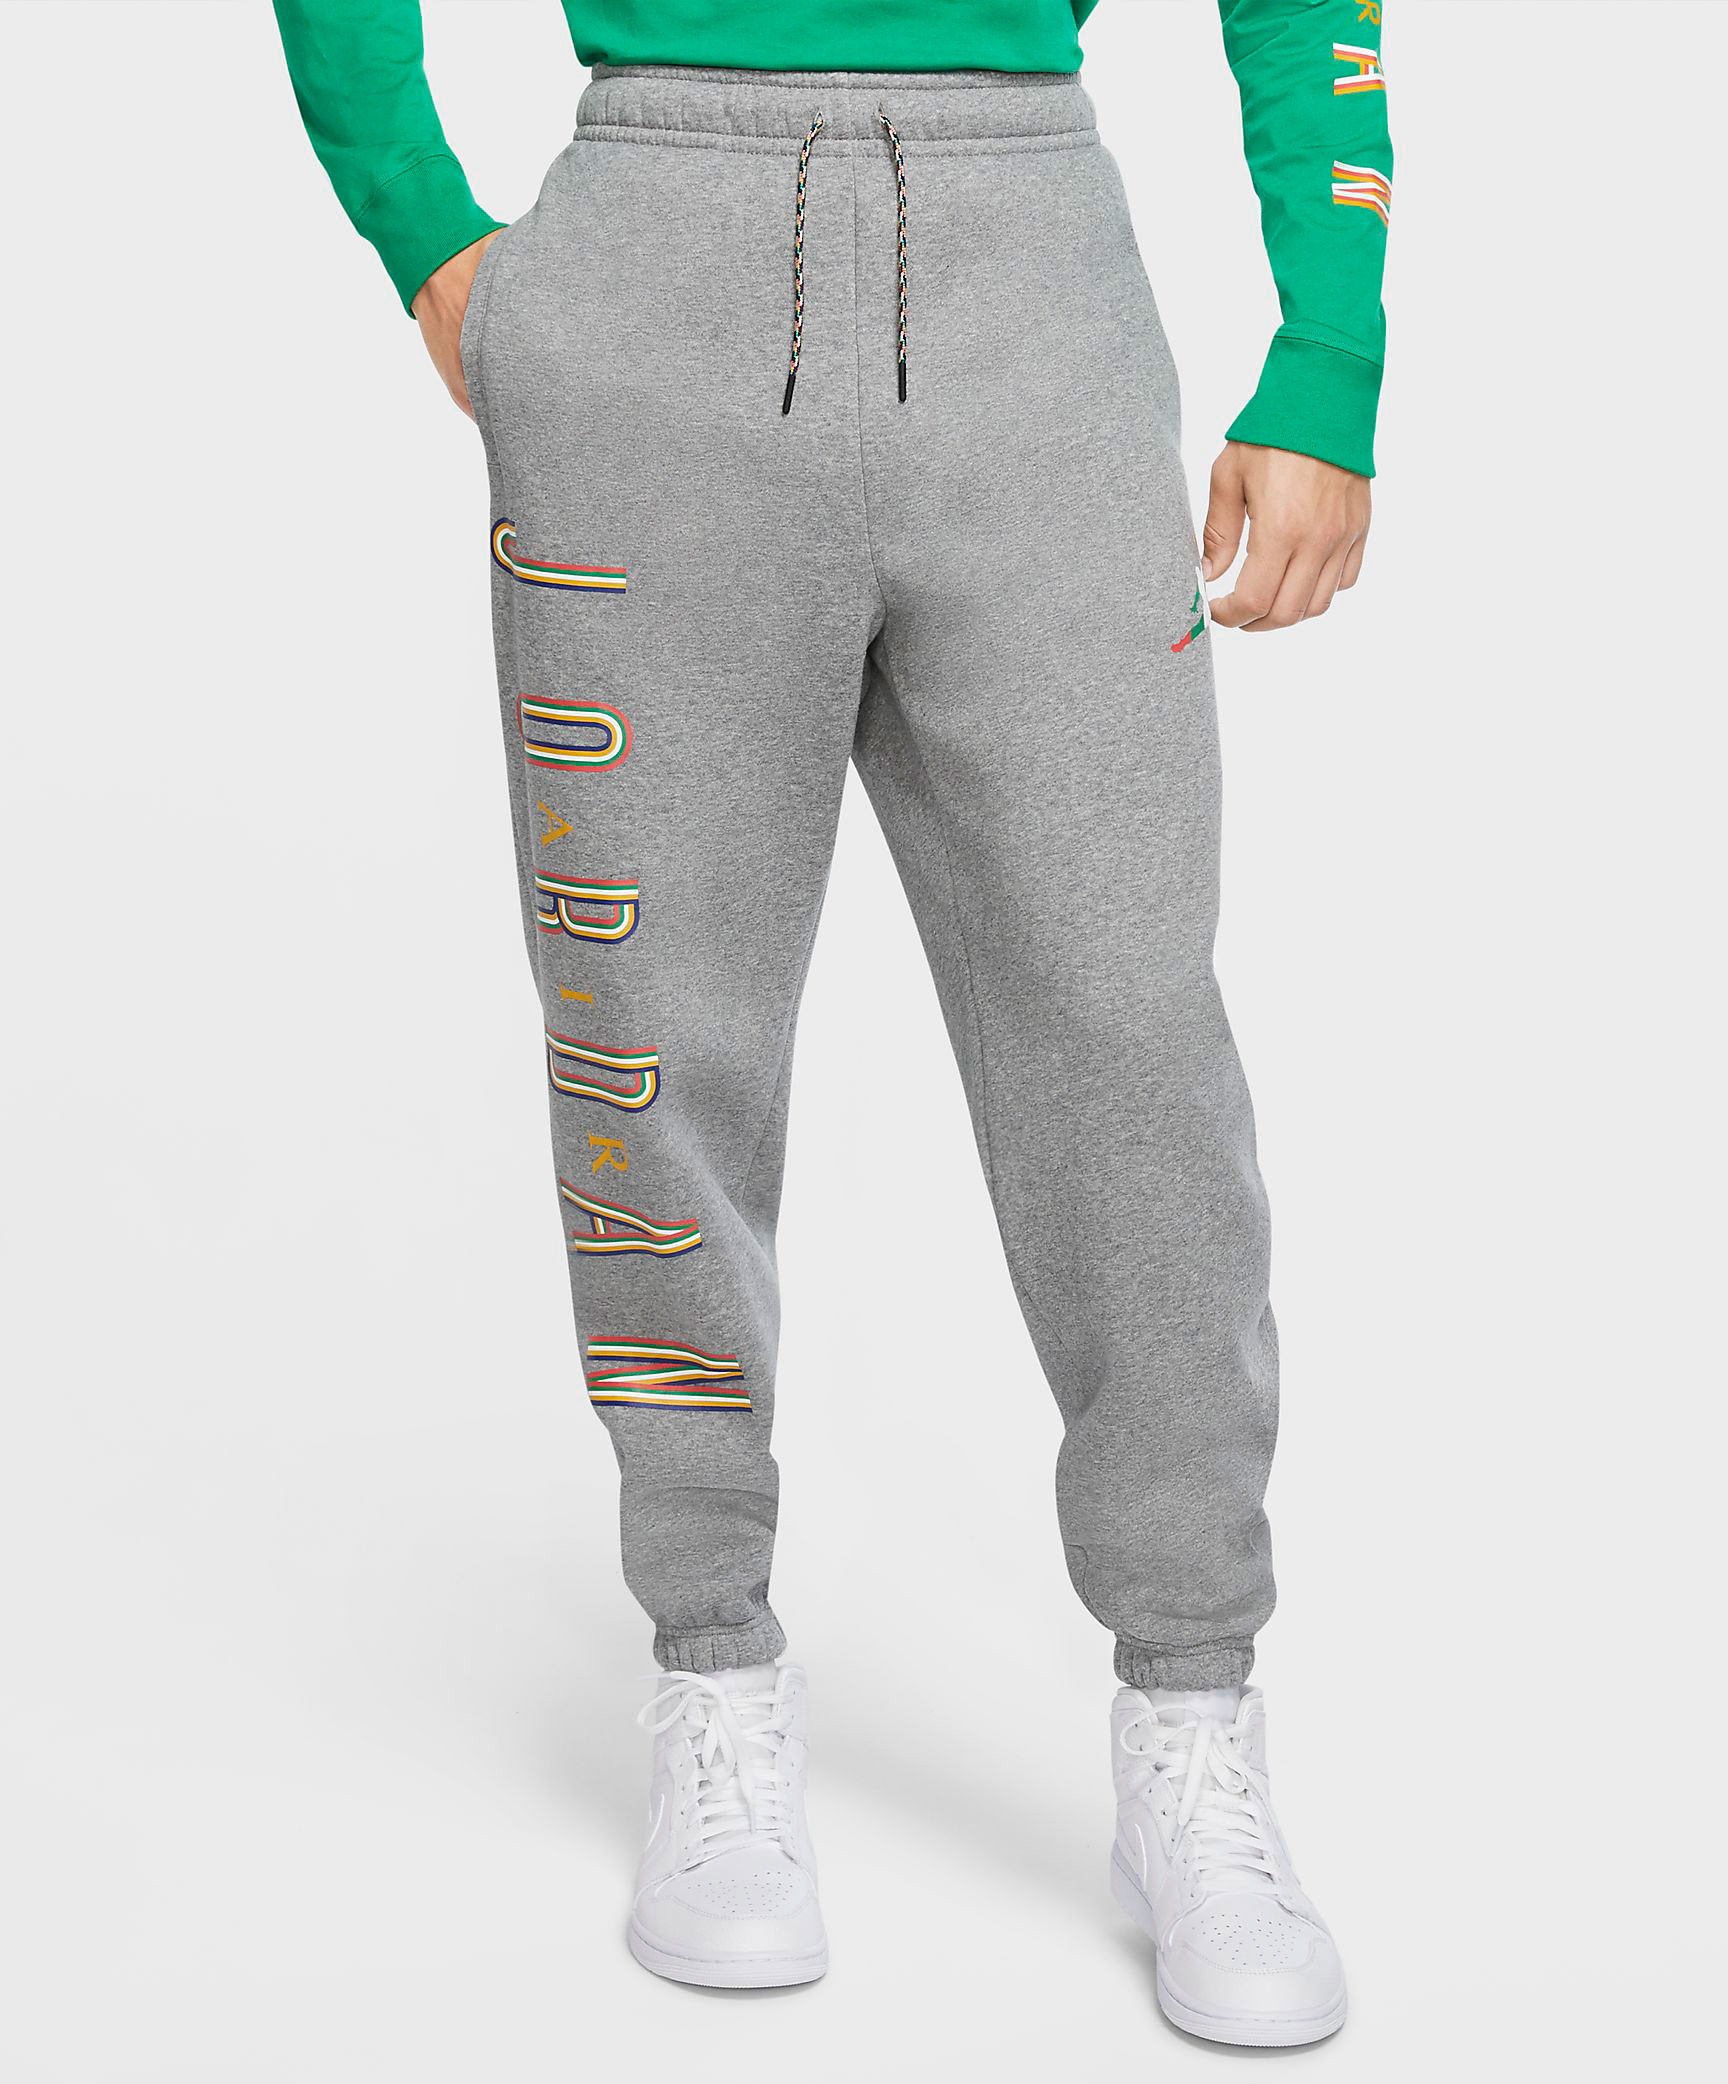 jordan-sport-dna-jogger-pant-grey-multi-color-3